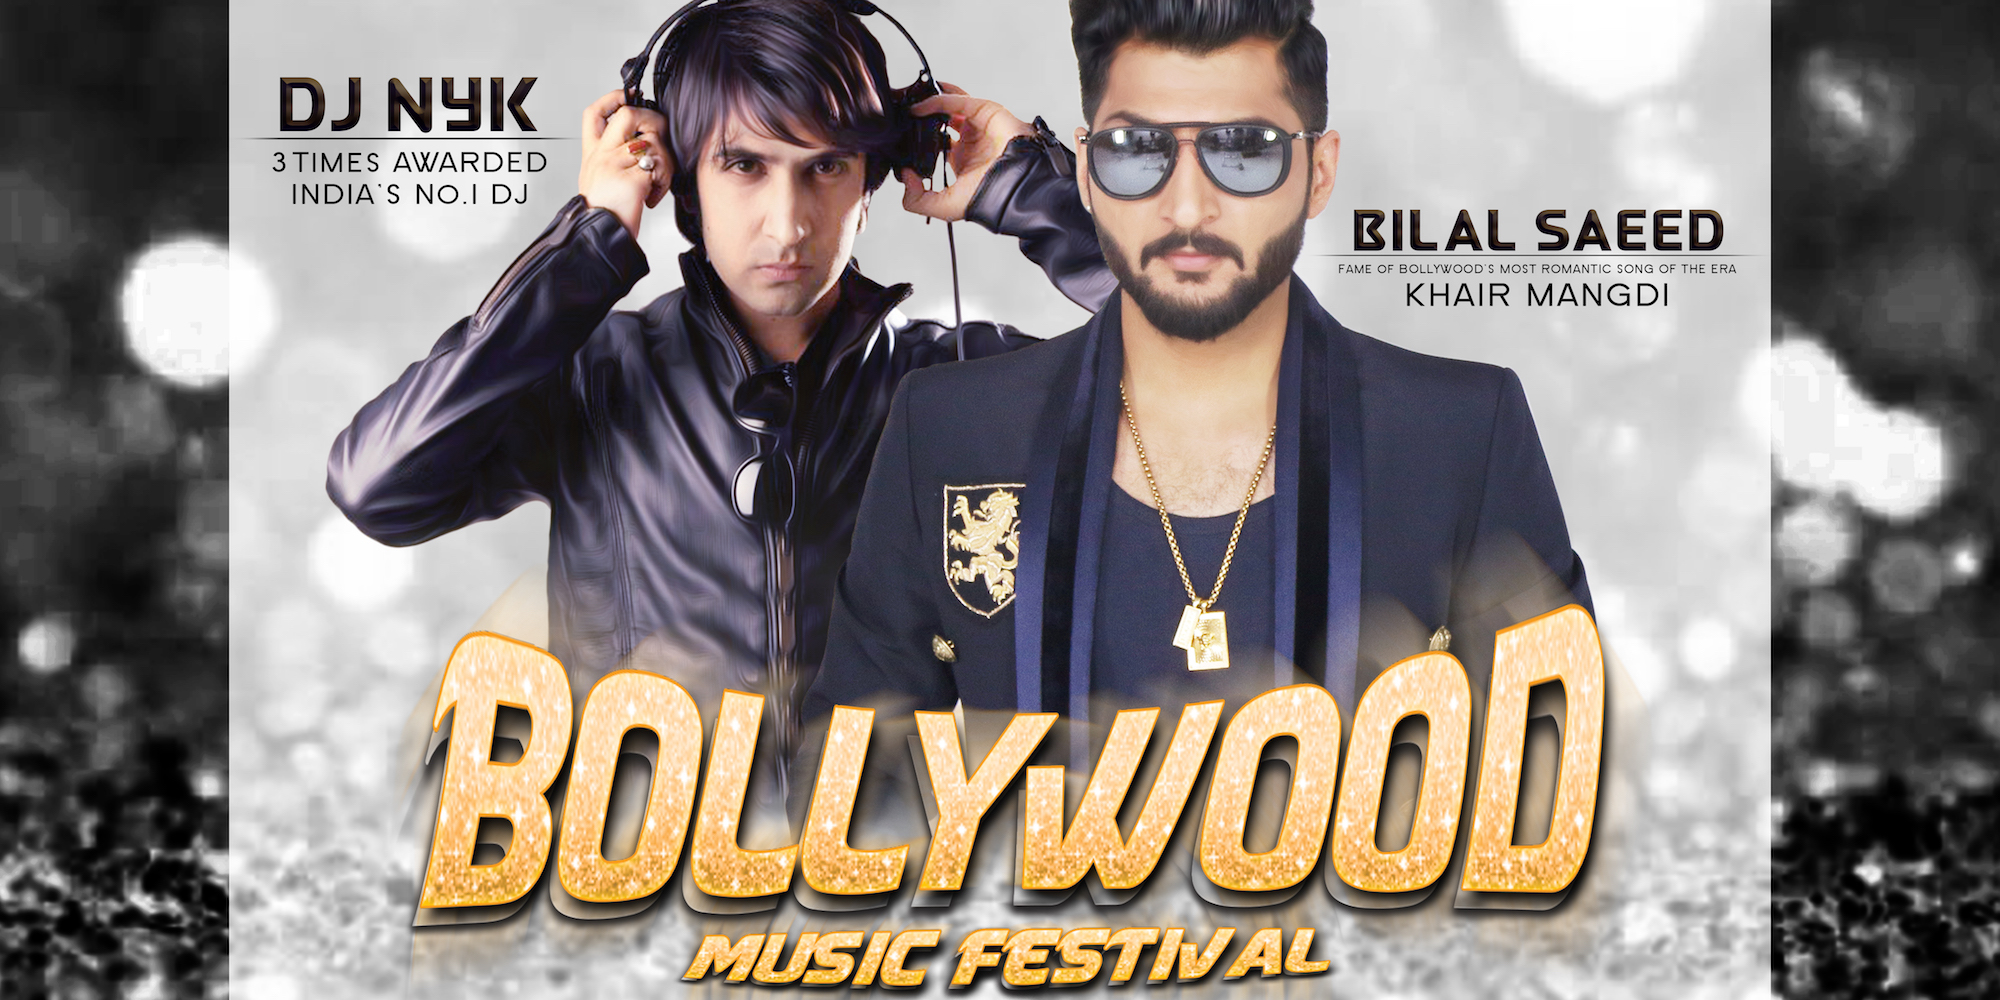 BOLLYWOOD ELECTRO MUSIC FEST